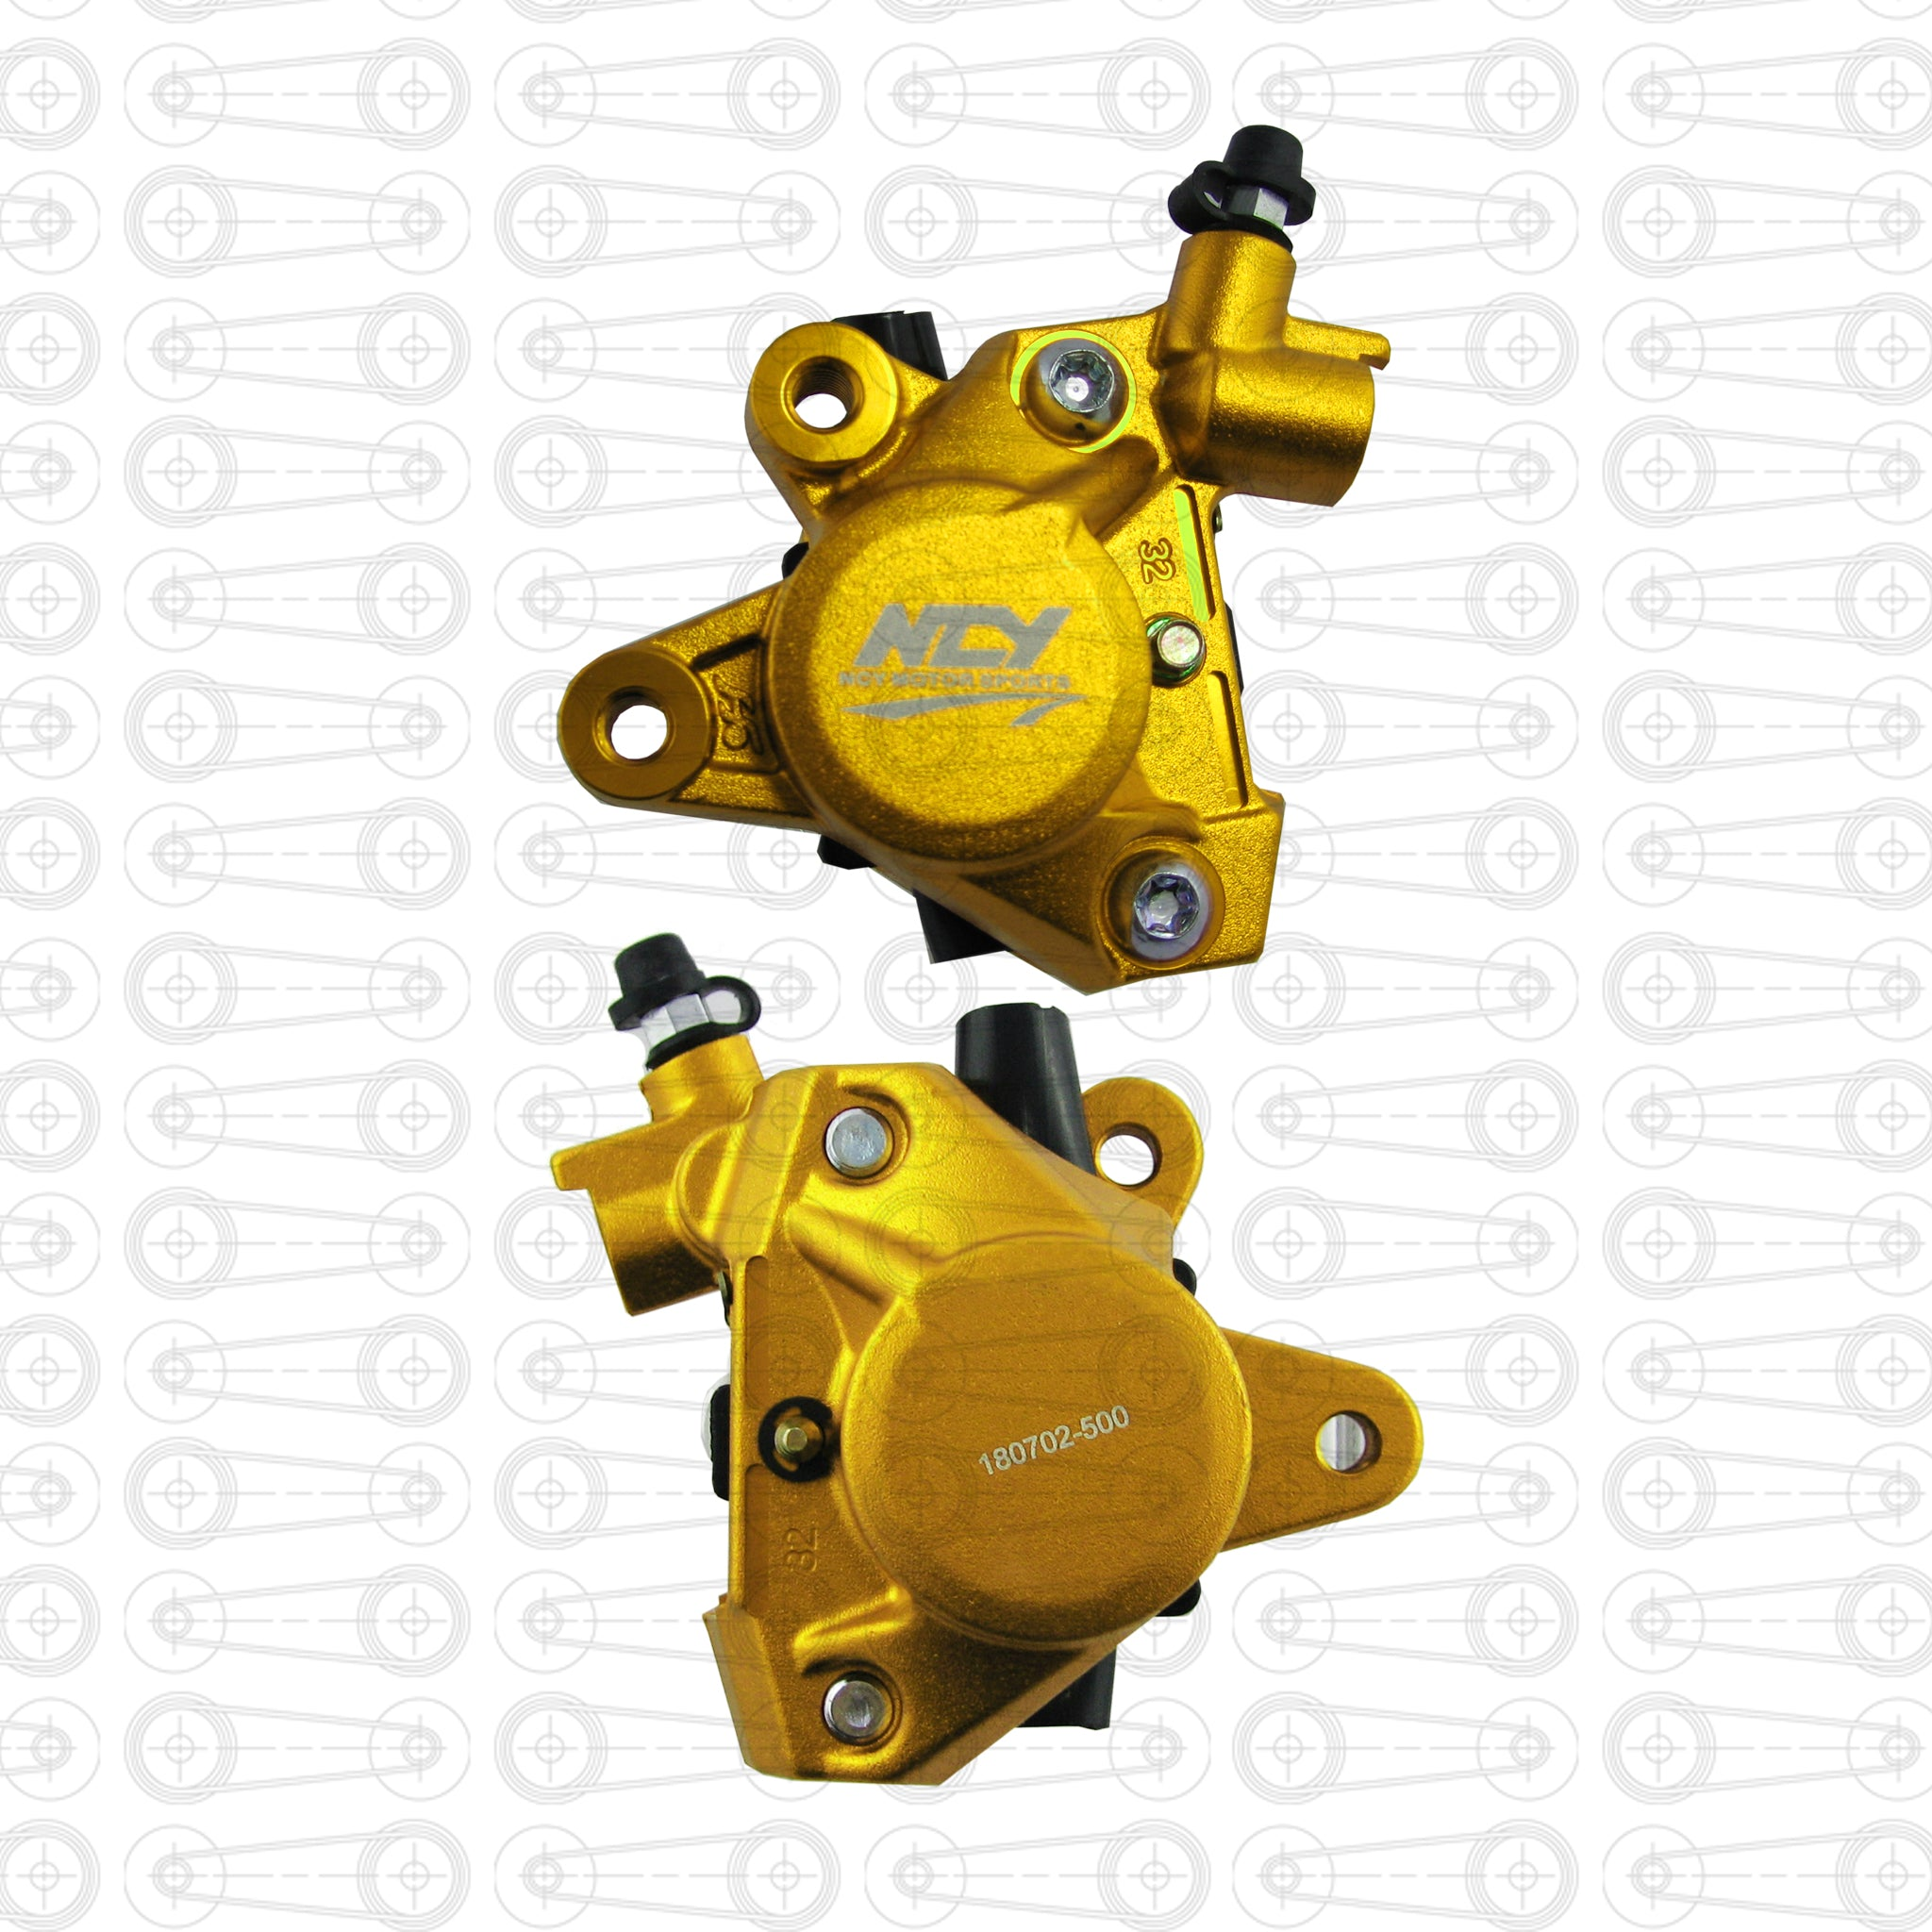 NCY - BRAKE CALIPER (Yellow)